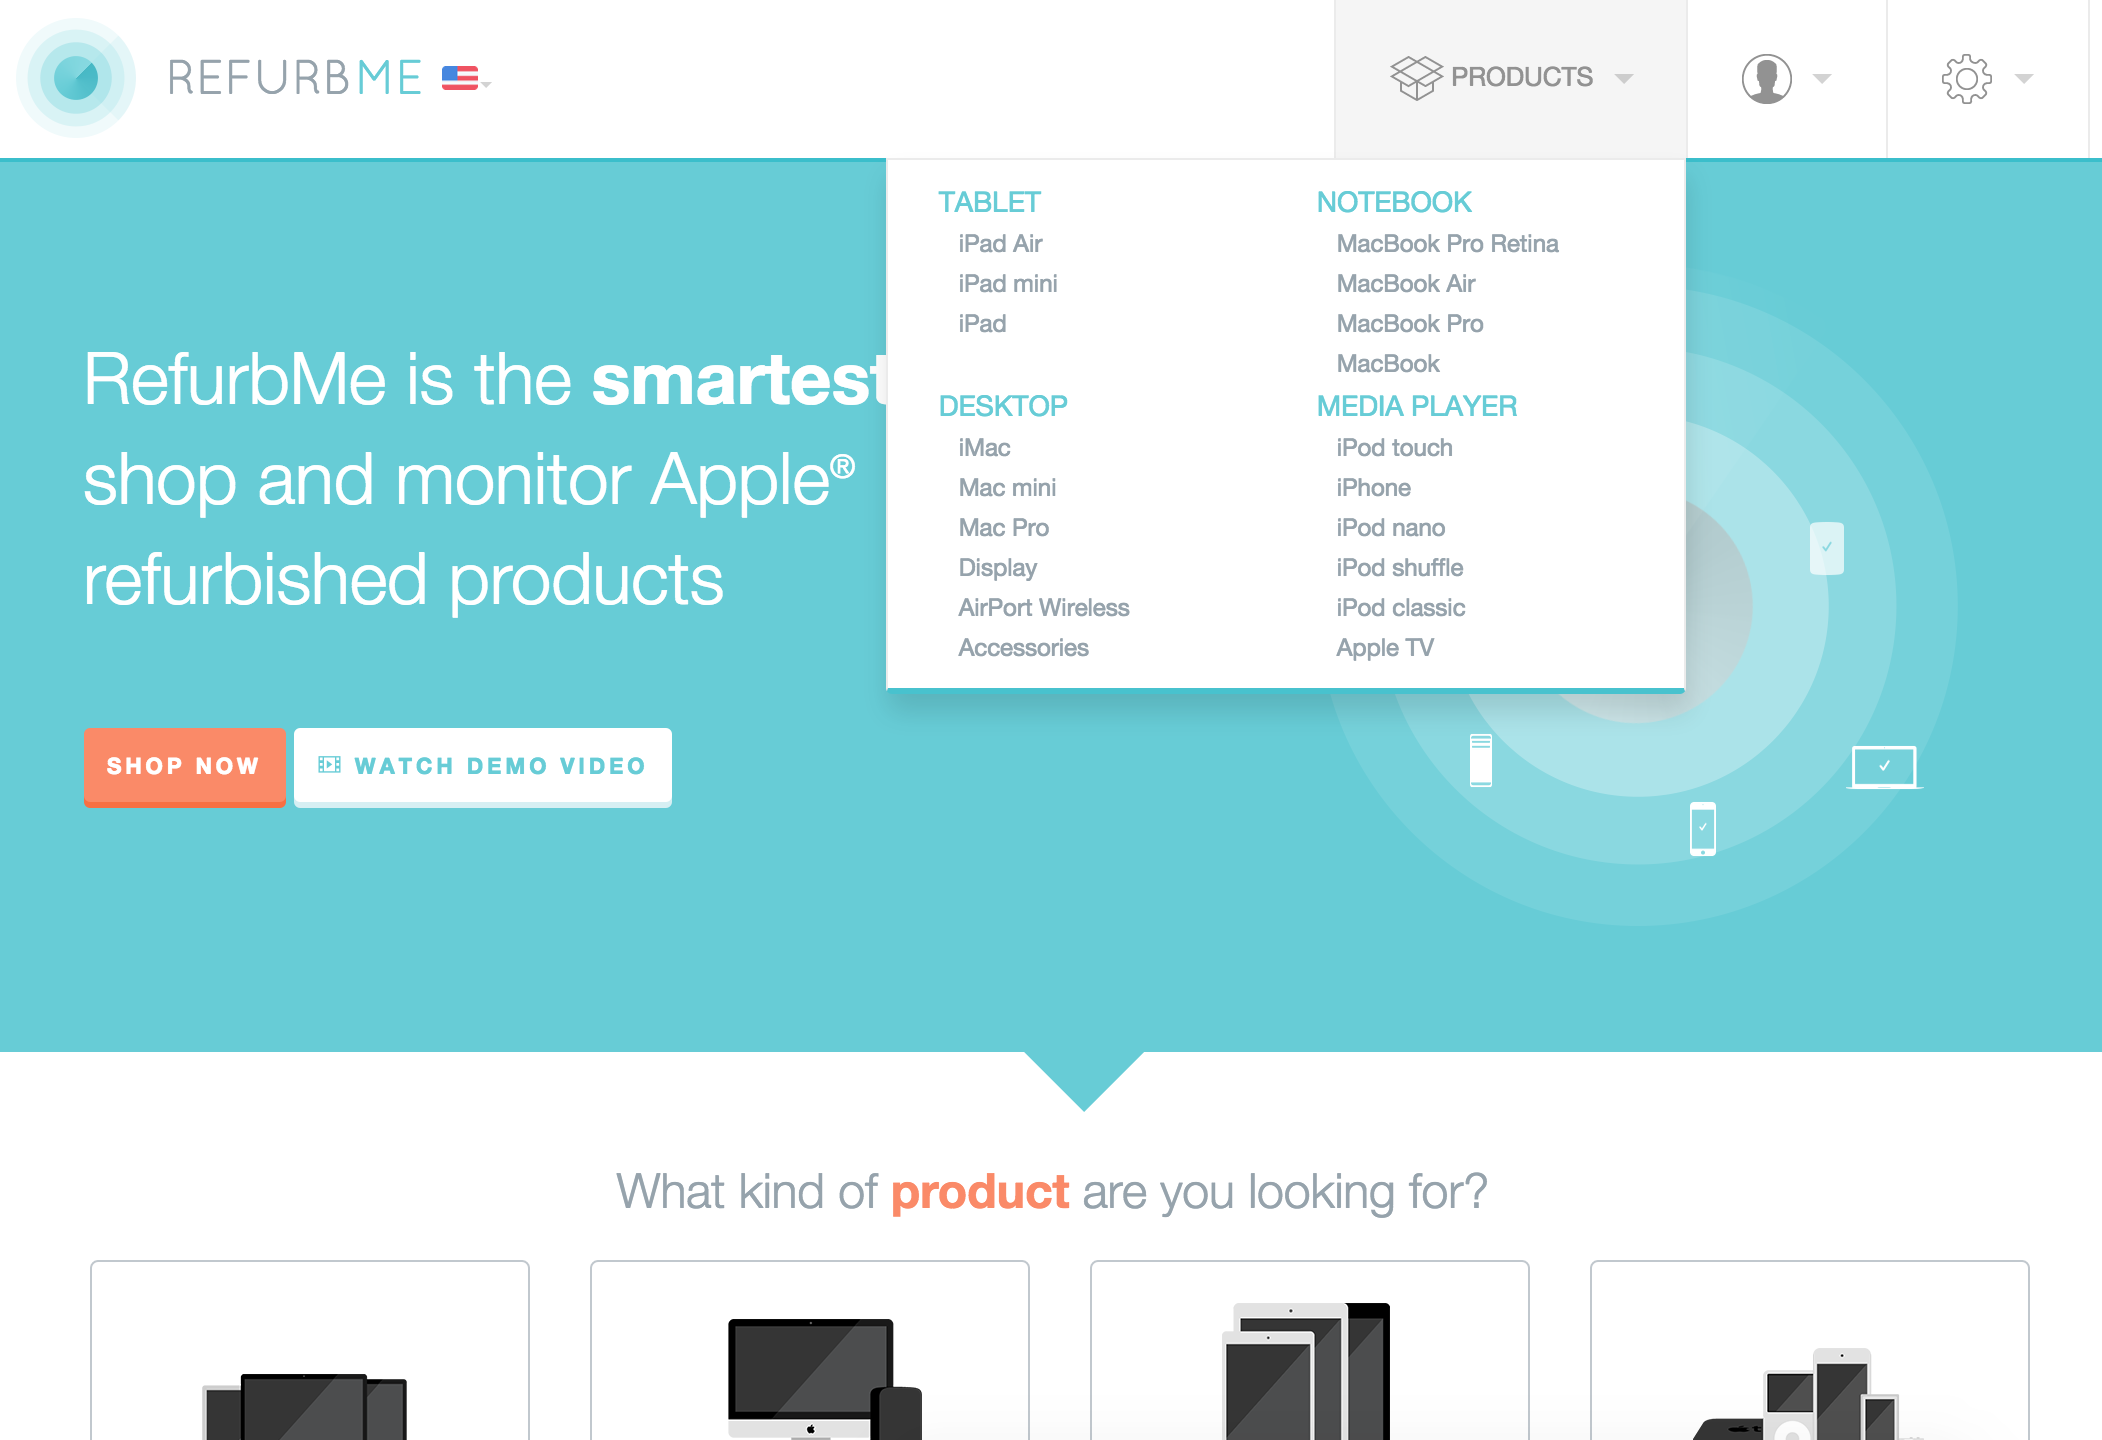 Refurb me - The smartest way to monitor Apple® refurbished products